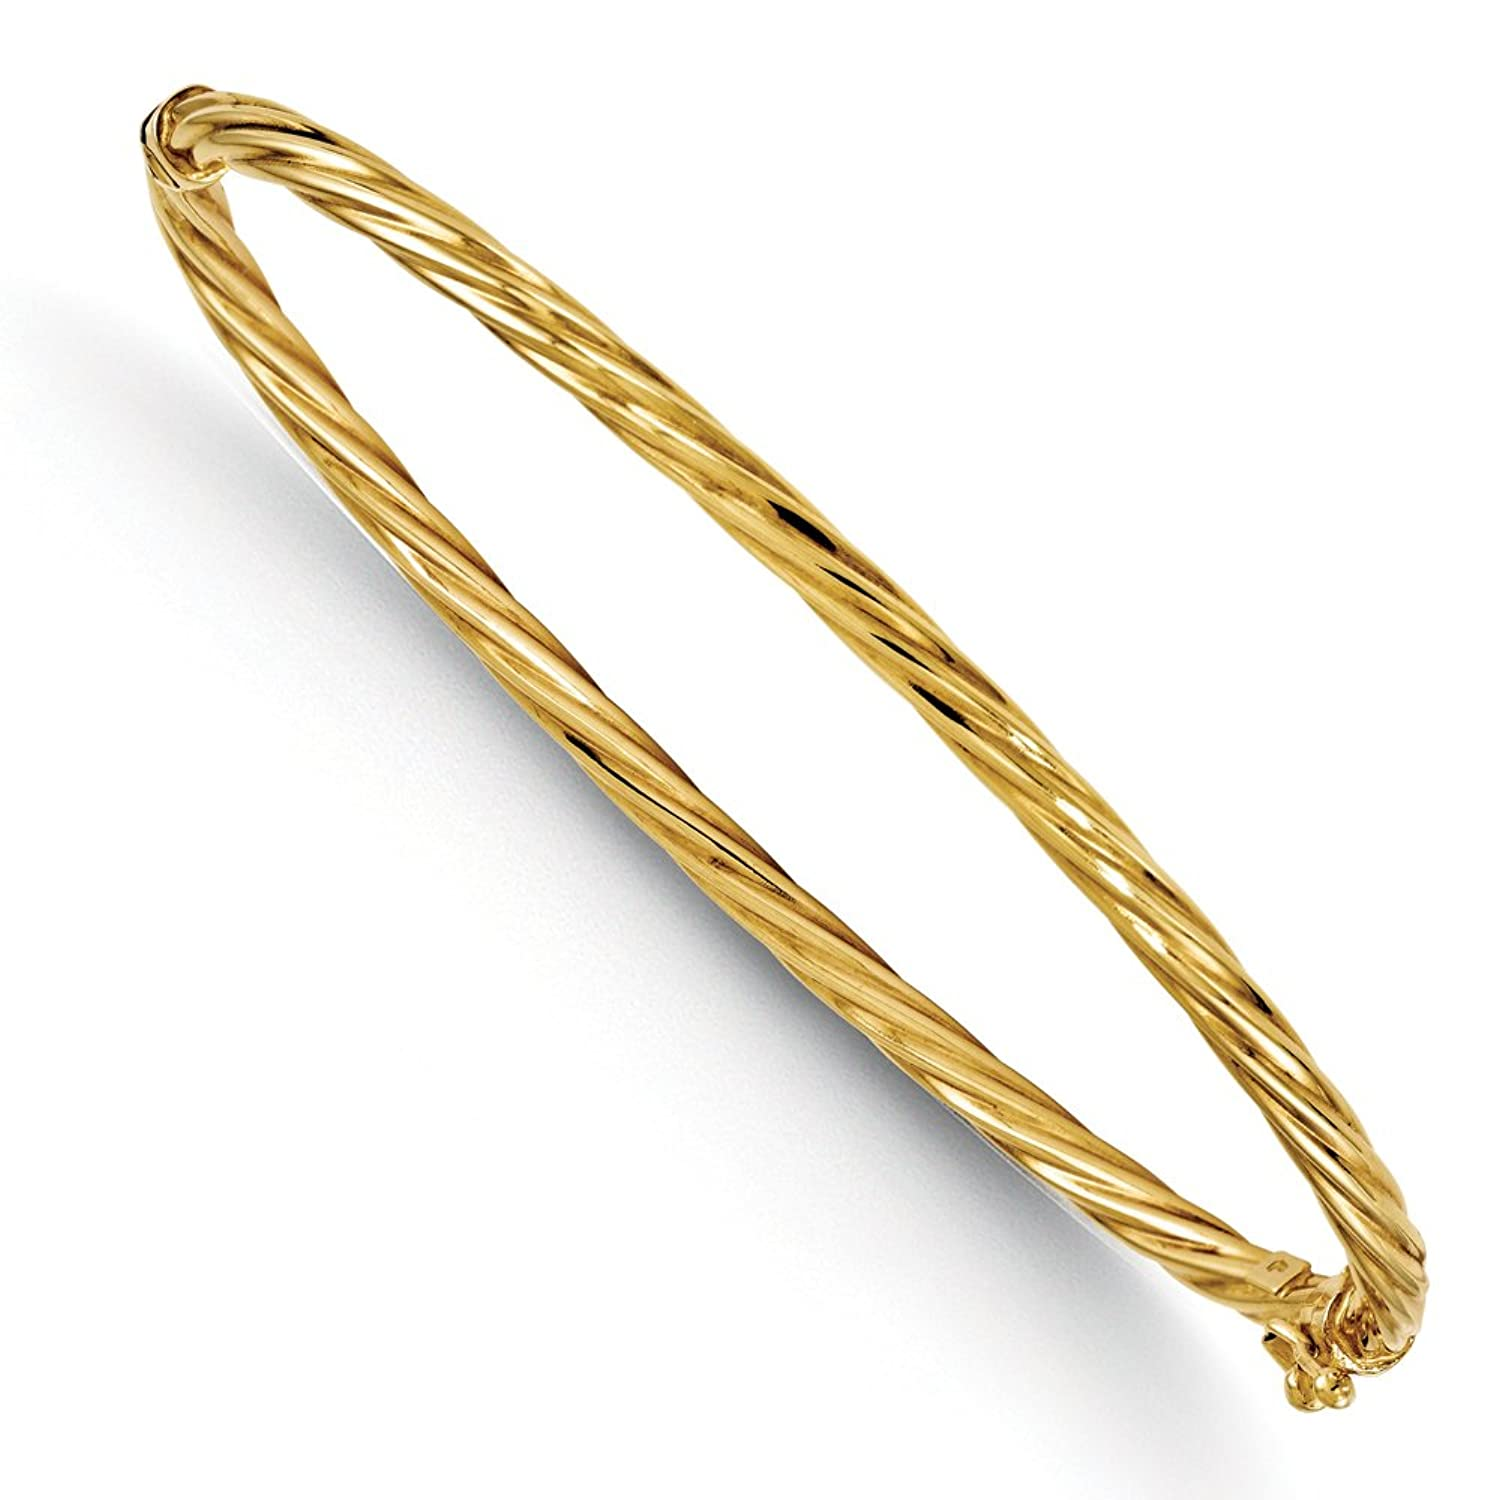 pin plated bling jewelry gold steel stainless twisted bracelet rope chain byzantine